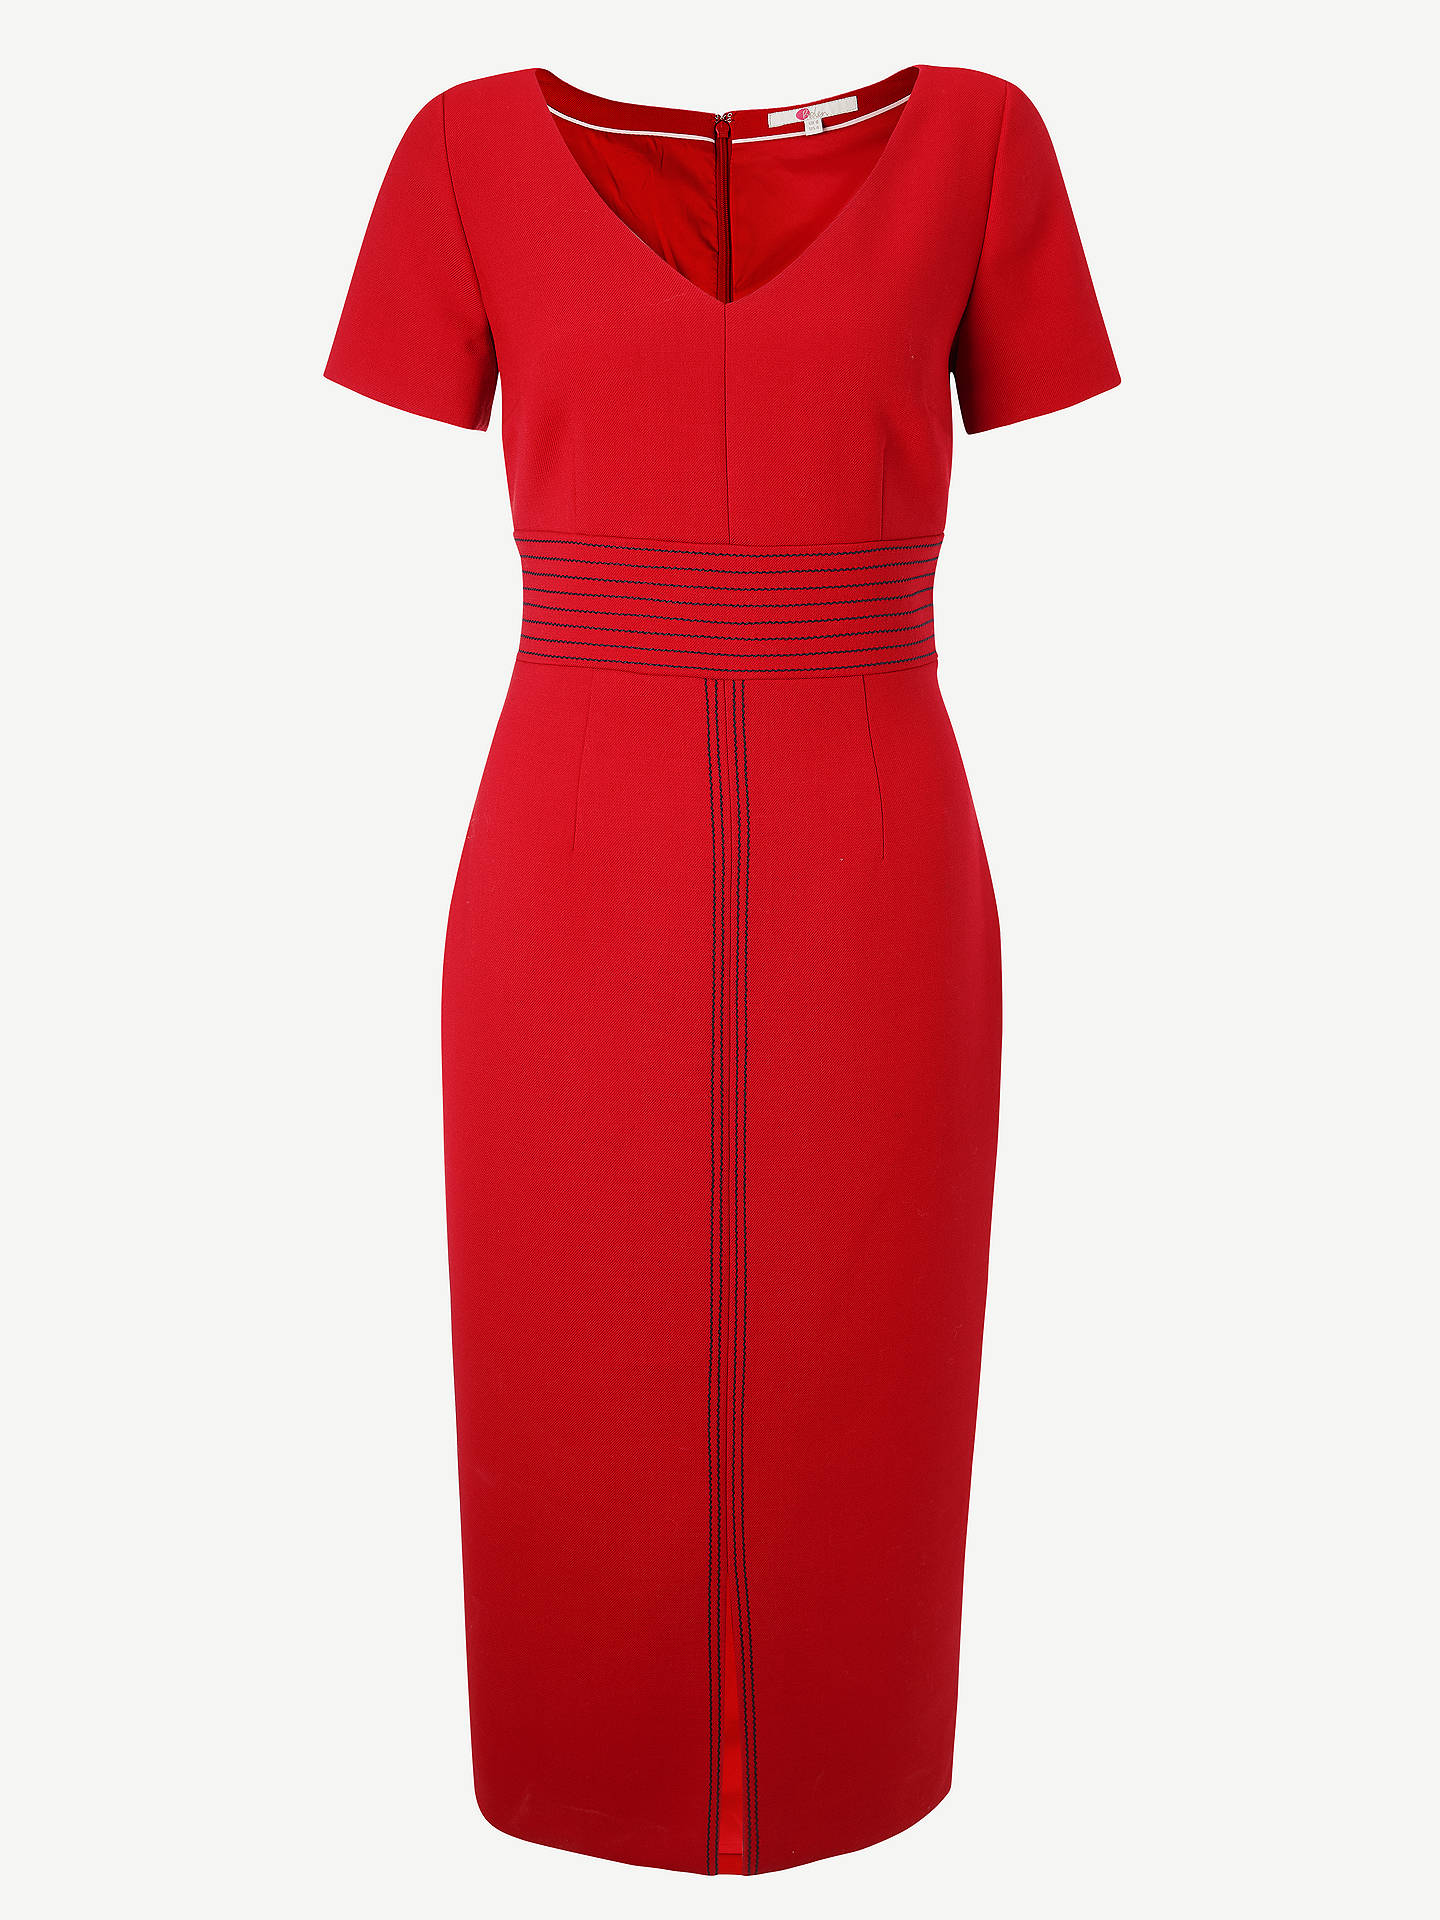 Buy Boden Winsford Midi Dress, Poinsettia, 18 Online at johnlewis.com